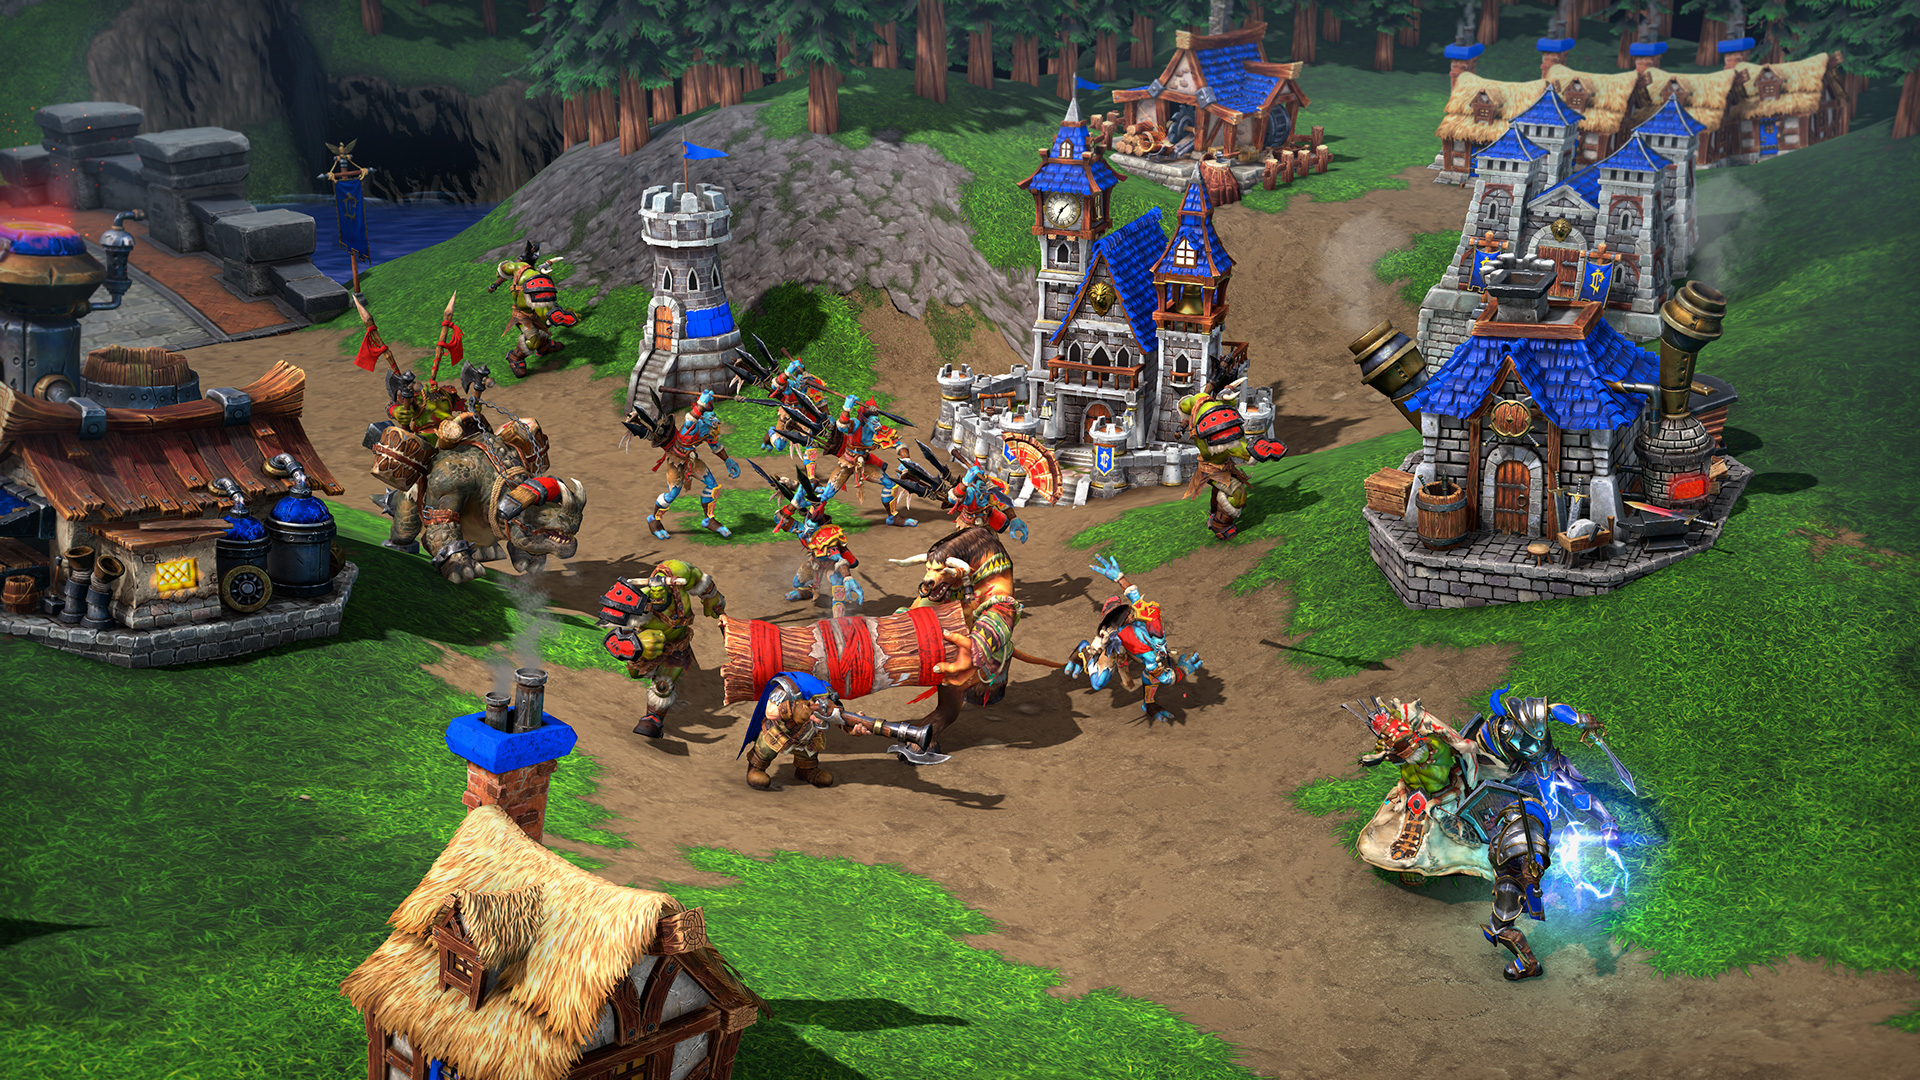 A screenshot showing orcs invading a human settlement in Warcraft III: Reforged.